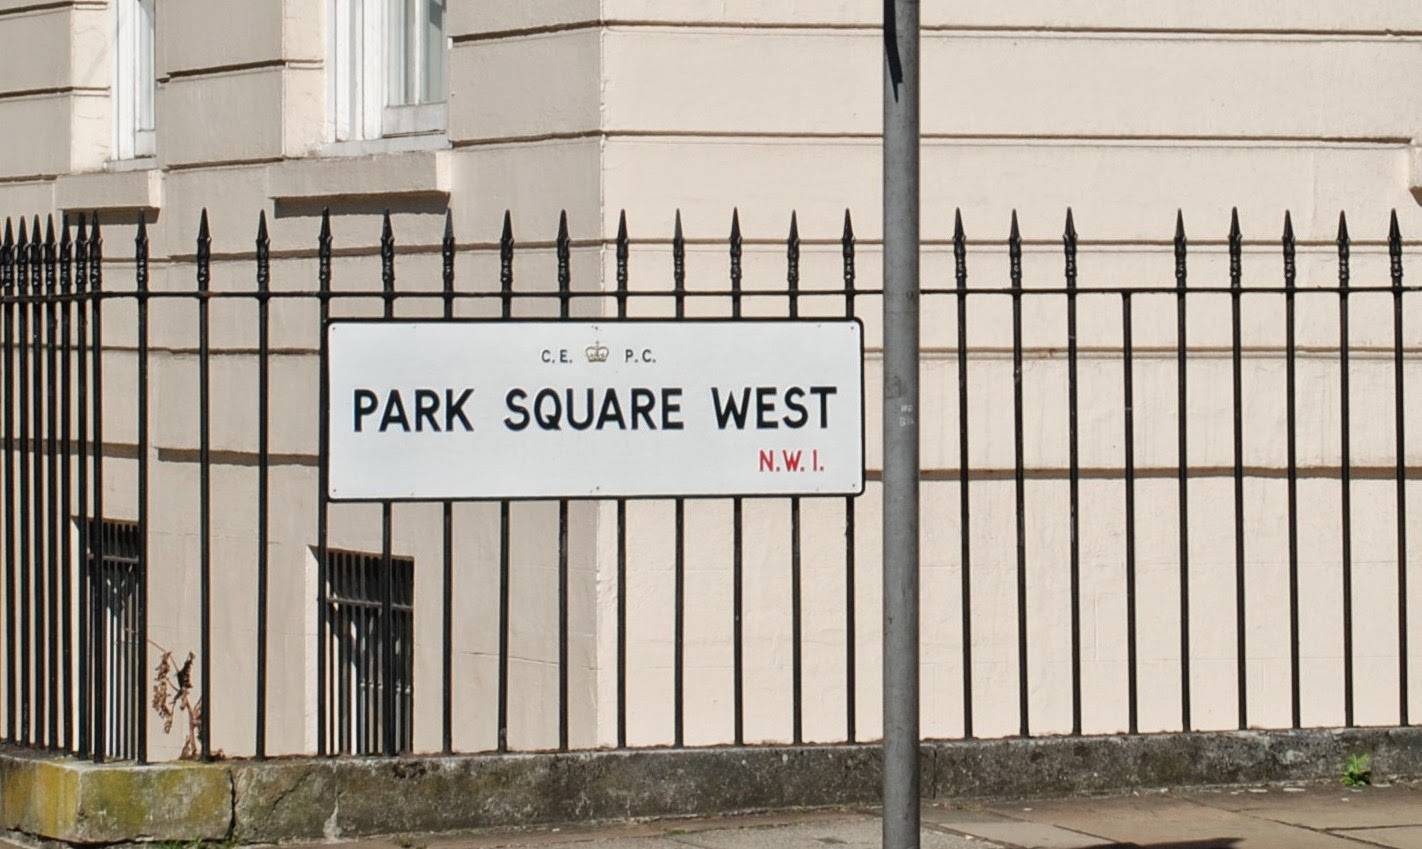 Park Square West, London